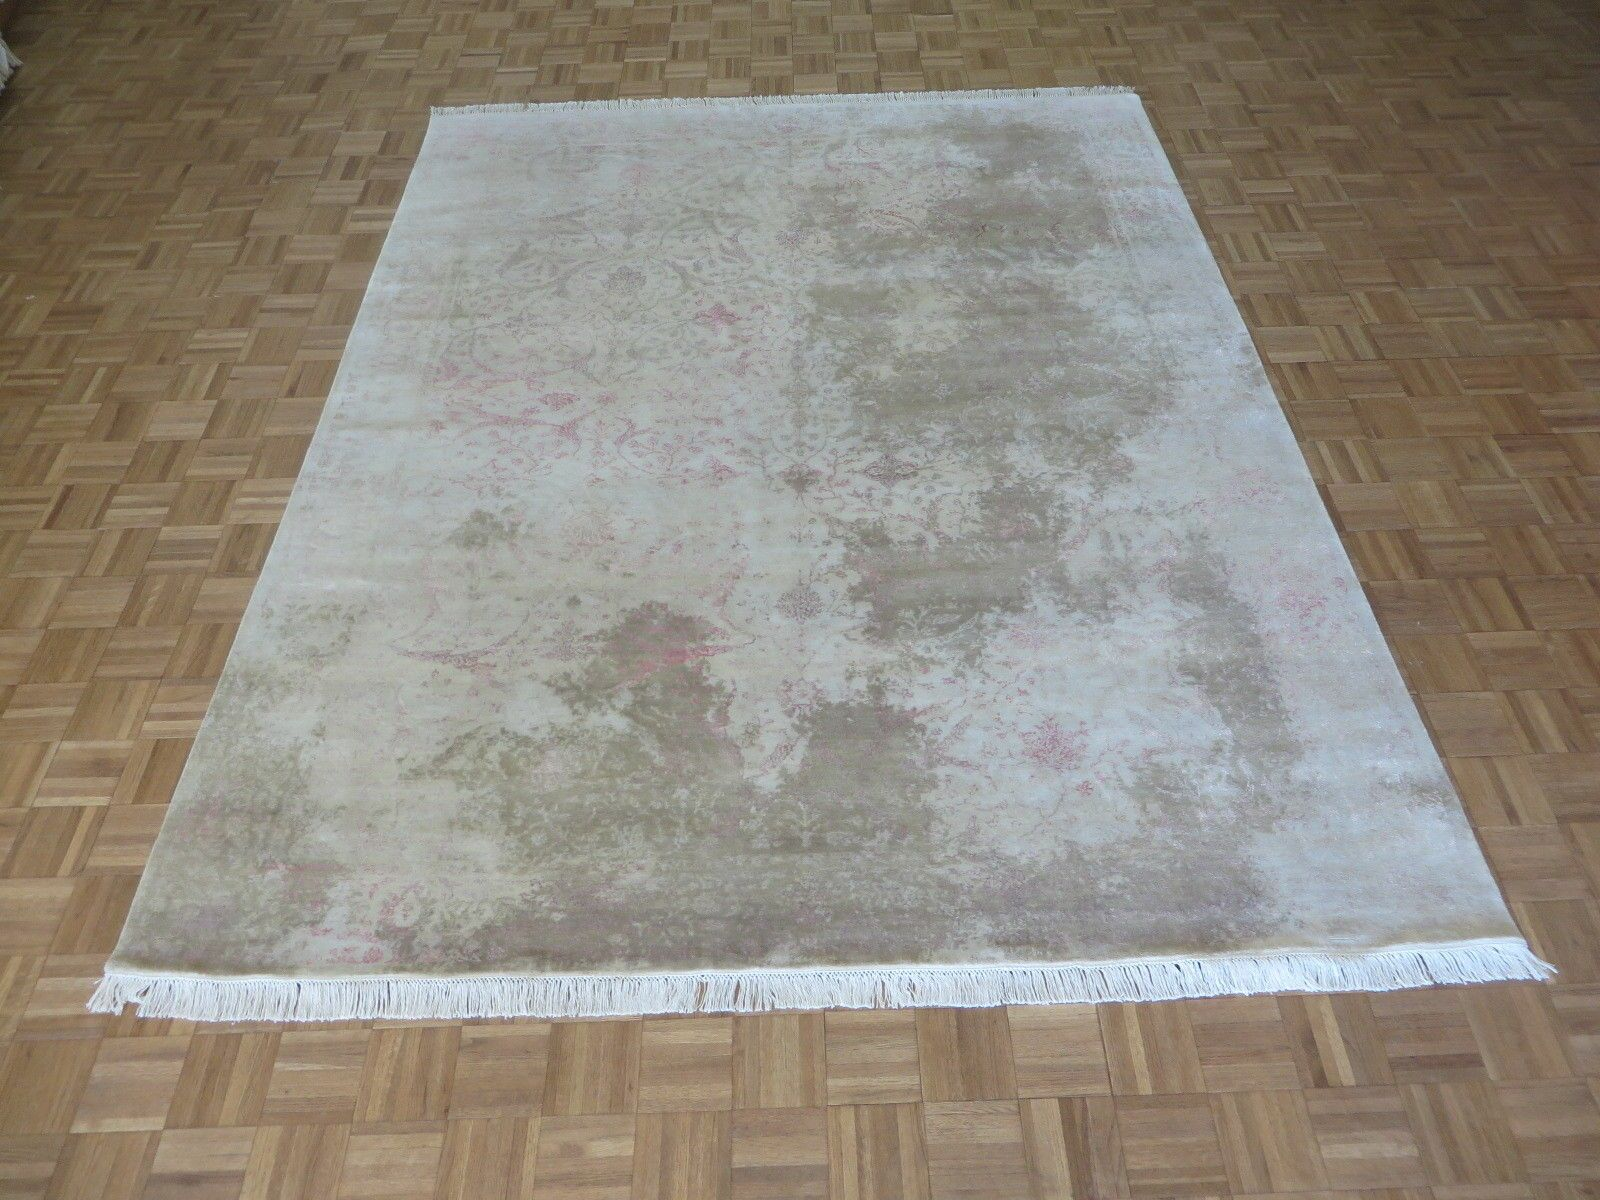 One-of-a-Kind Josephson Modern Abstract Hand-Knotted Wool Beige Area Rug Rug Size: Rectangle 10' x 14'2